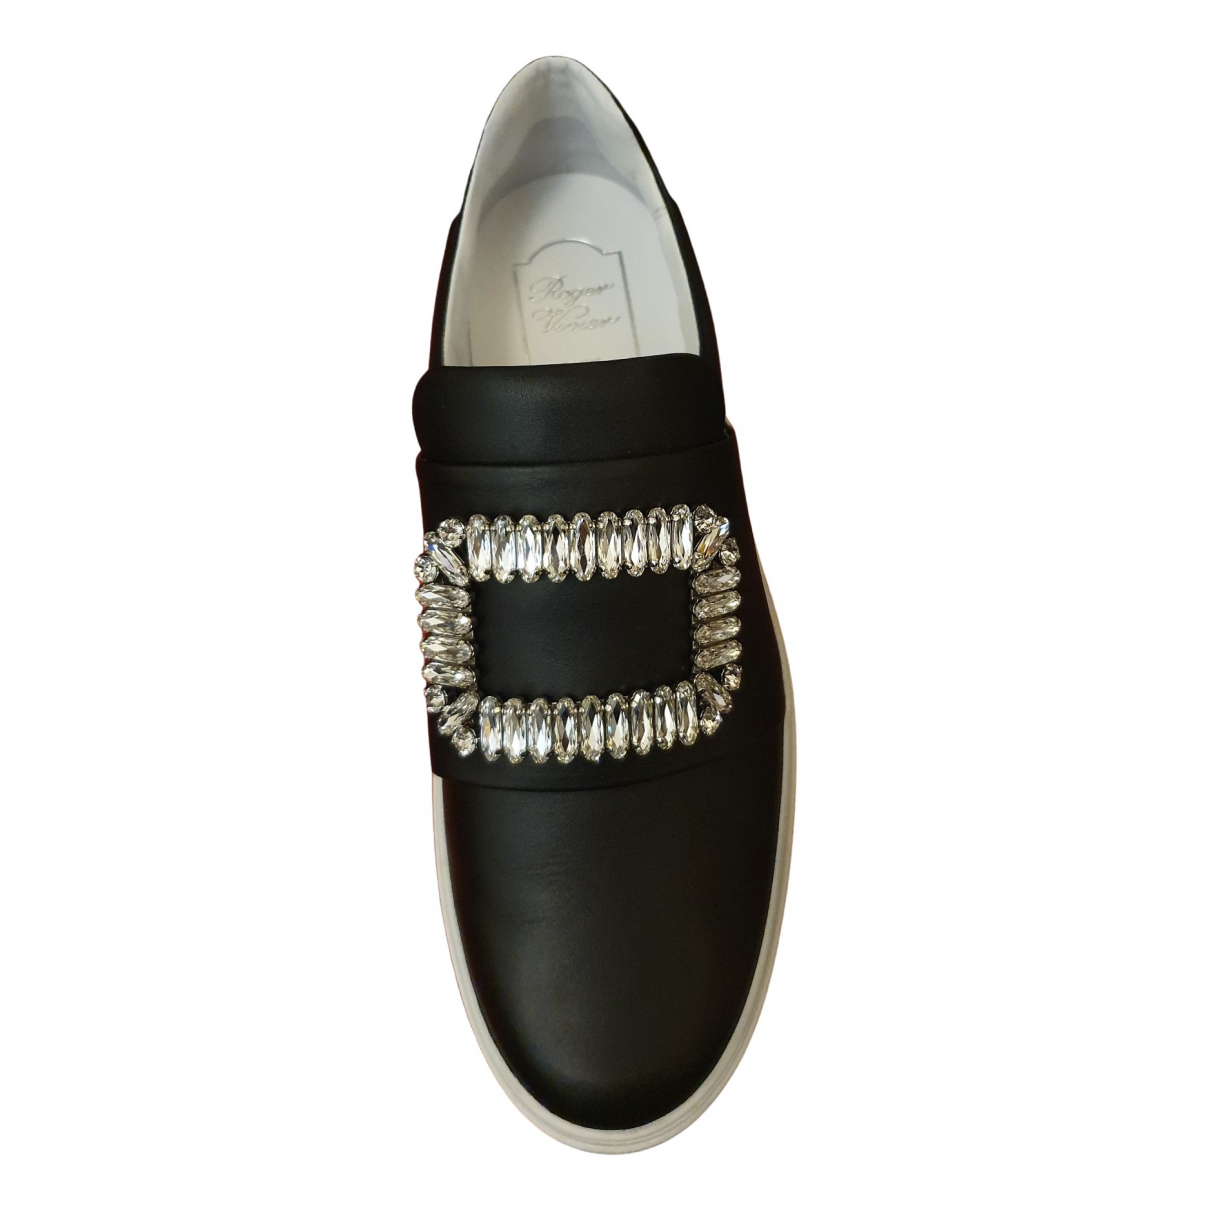 Roger Vivier N Black Leather Trainers for Women 36 EU